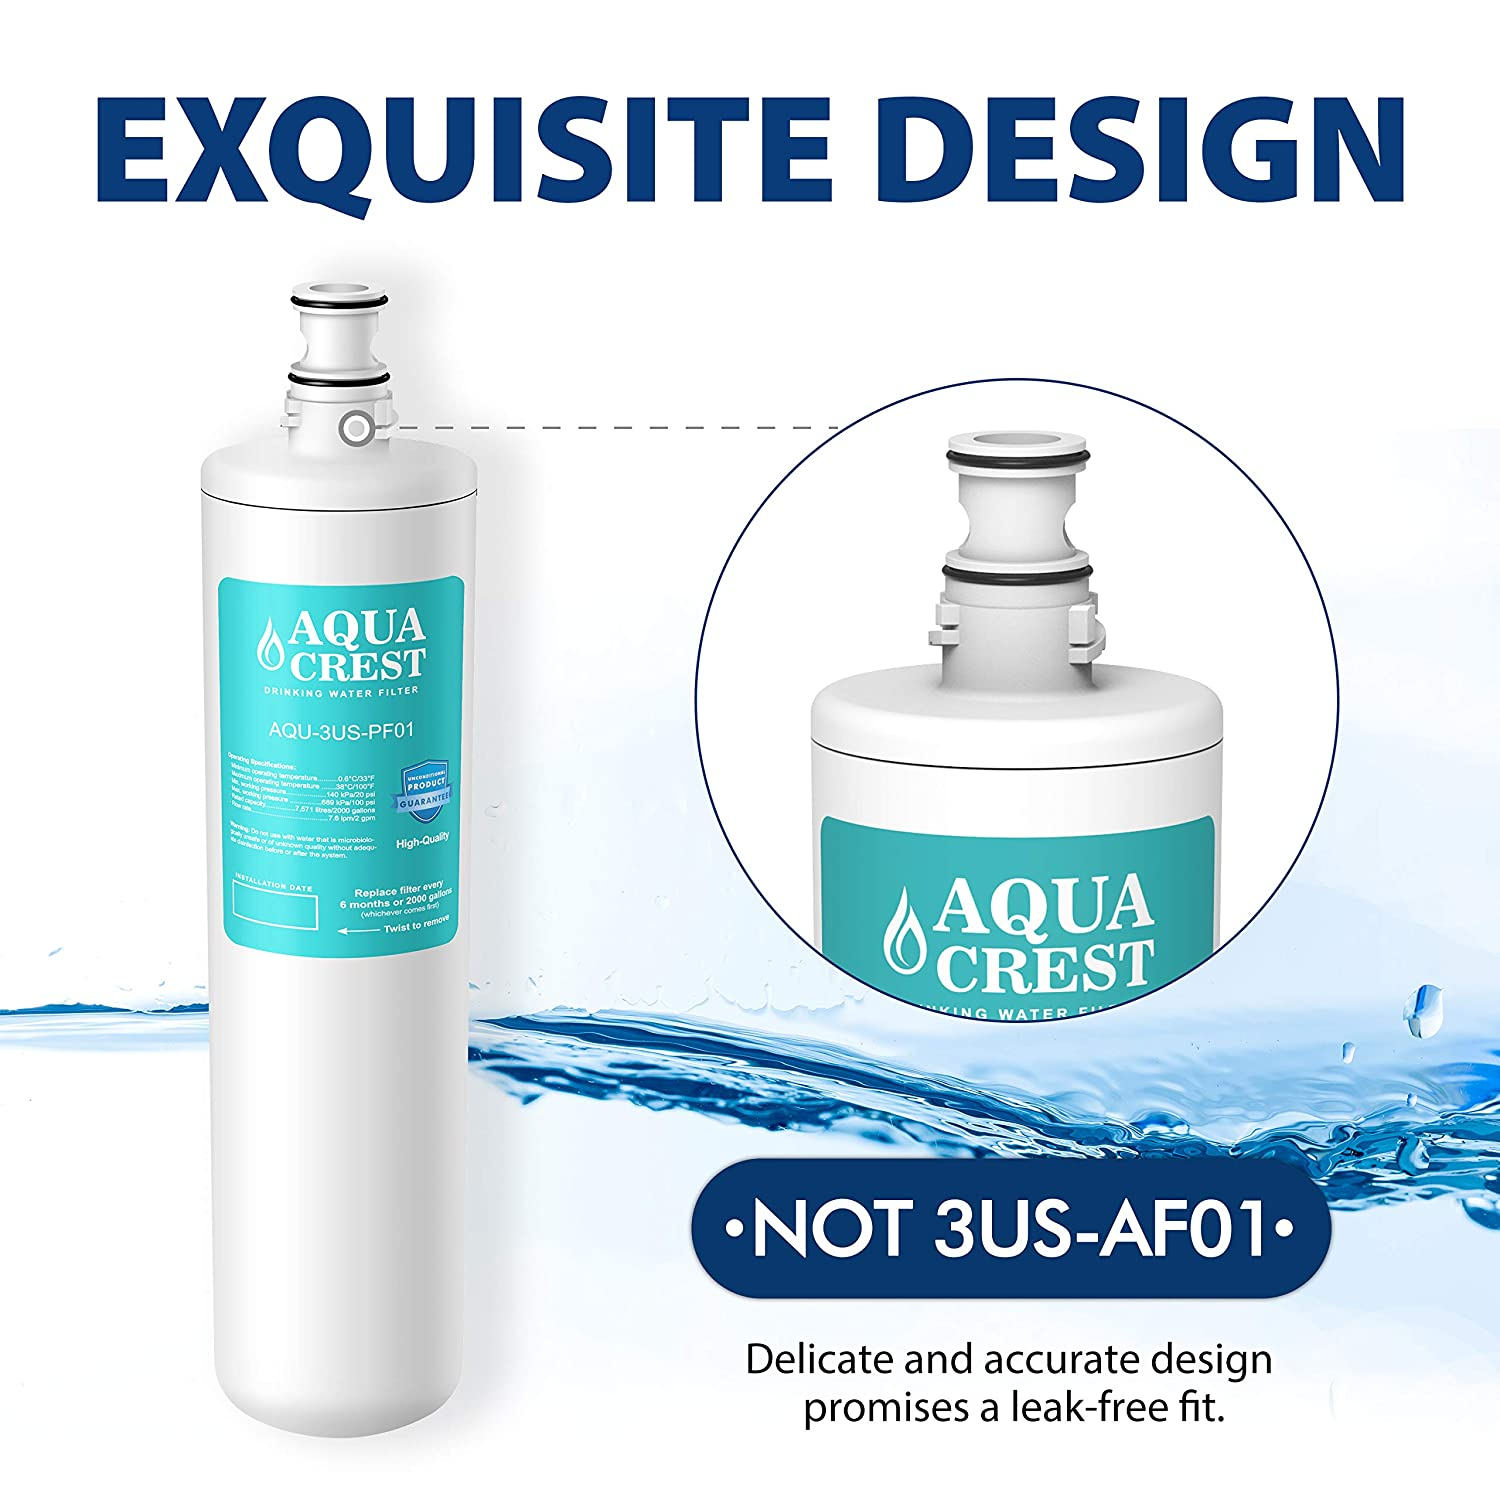 K-00338 Water Filter AQUA CREST 3US-PF01 Under Sink Water Filter Manitowoc K-00337 3US-PF01H Compatible with Filtrete Advanced 3US-PF01 3US-MAX-F01H Delta RP78702